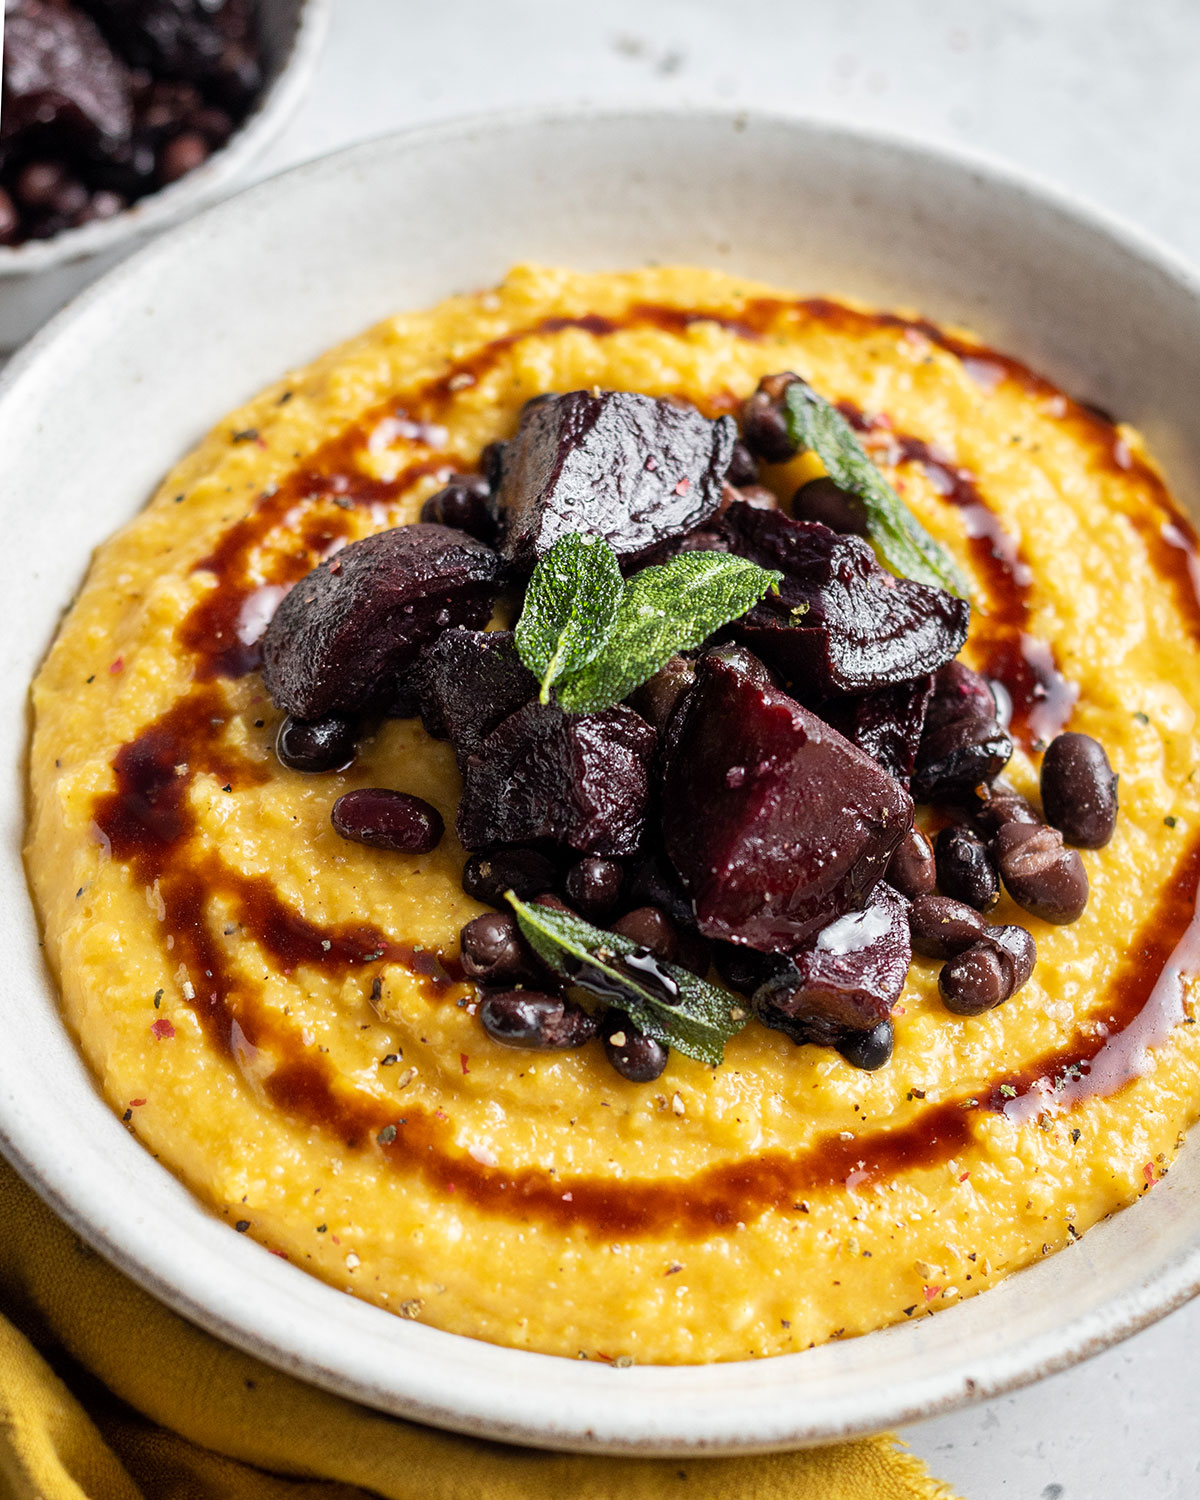 A full bowl of creamy pumpkin polenta topped with roasted beetroot black beans and a balsamic drizzle as well as crispy sage leaves.